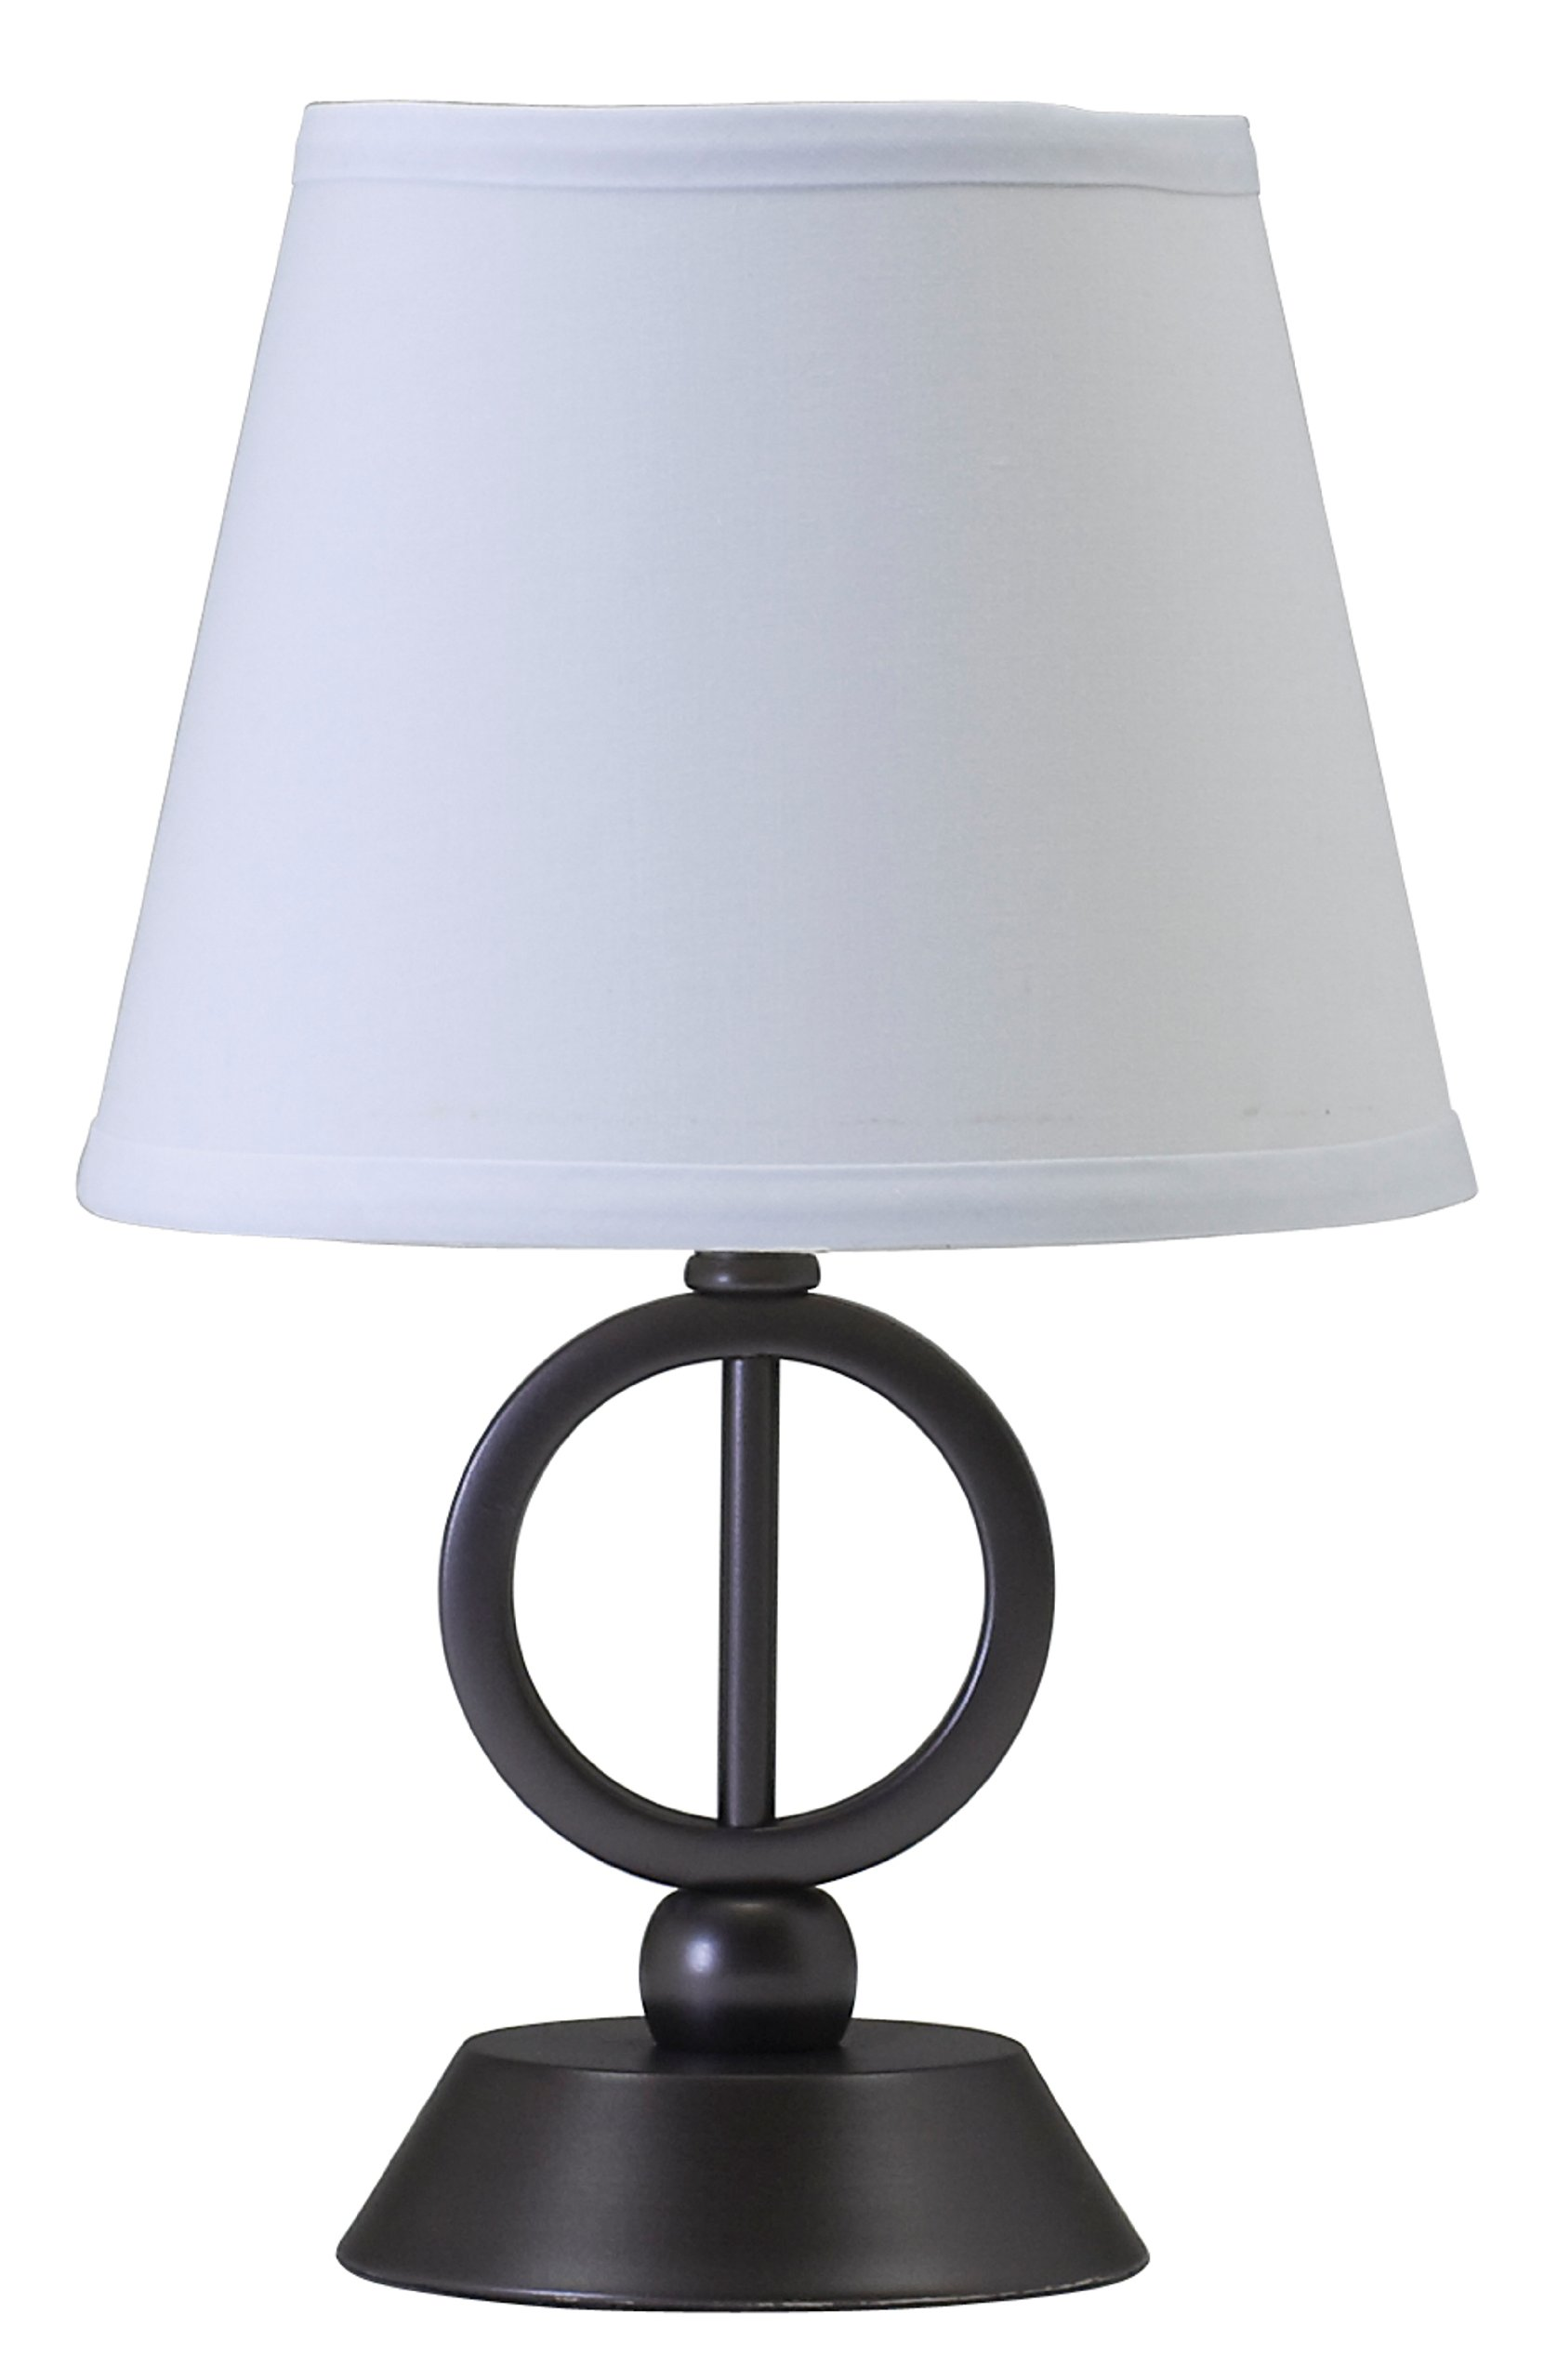 House of Troy CH875-OB Coach Collection 14-Inch Portable Accent Table Lamp, Oil Rubbed Bronze